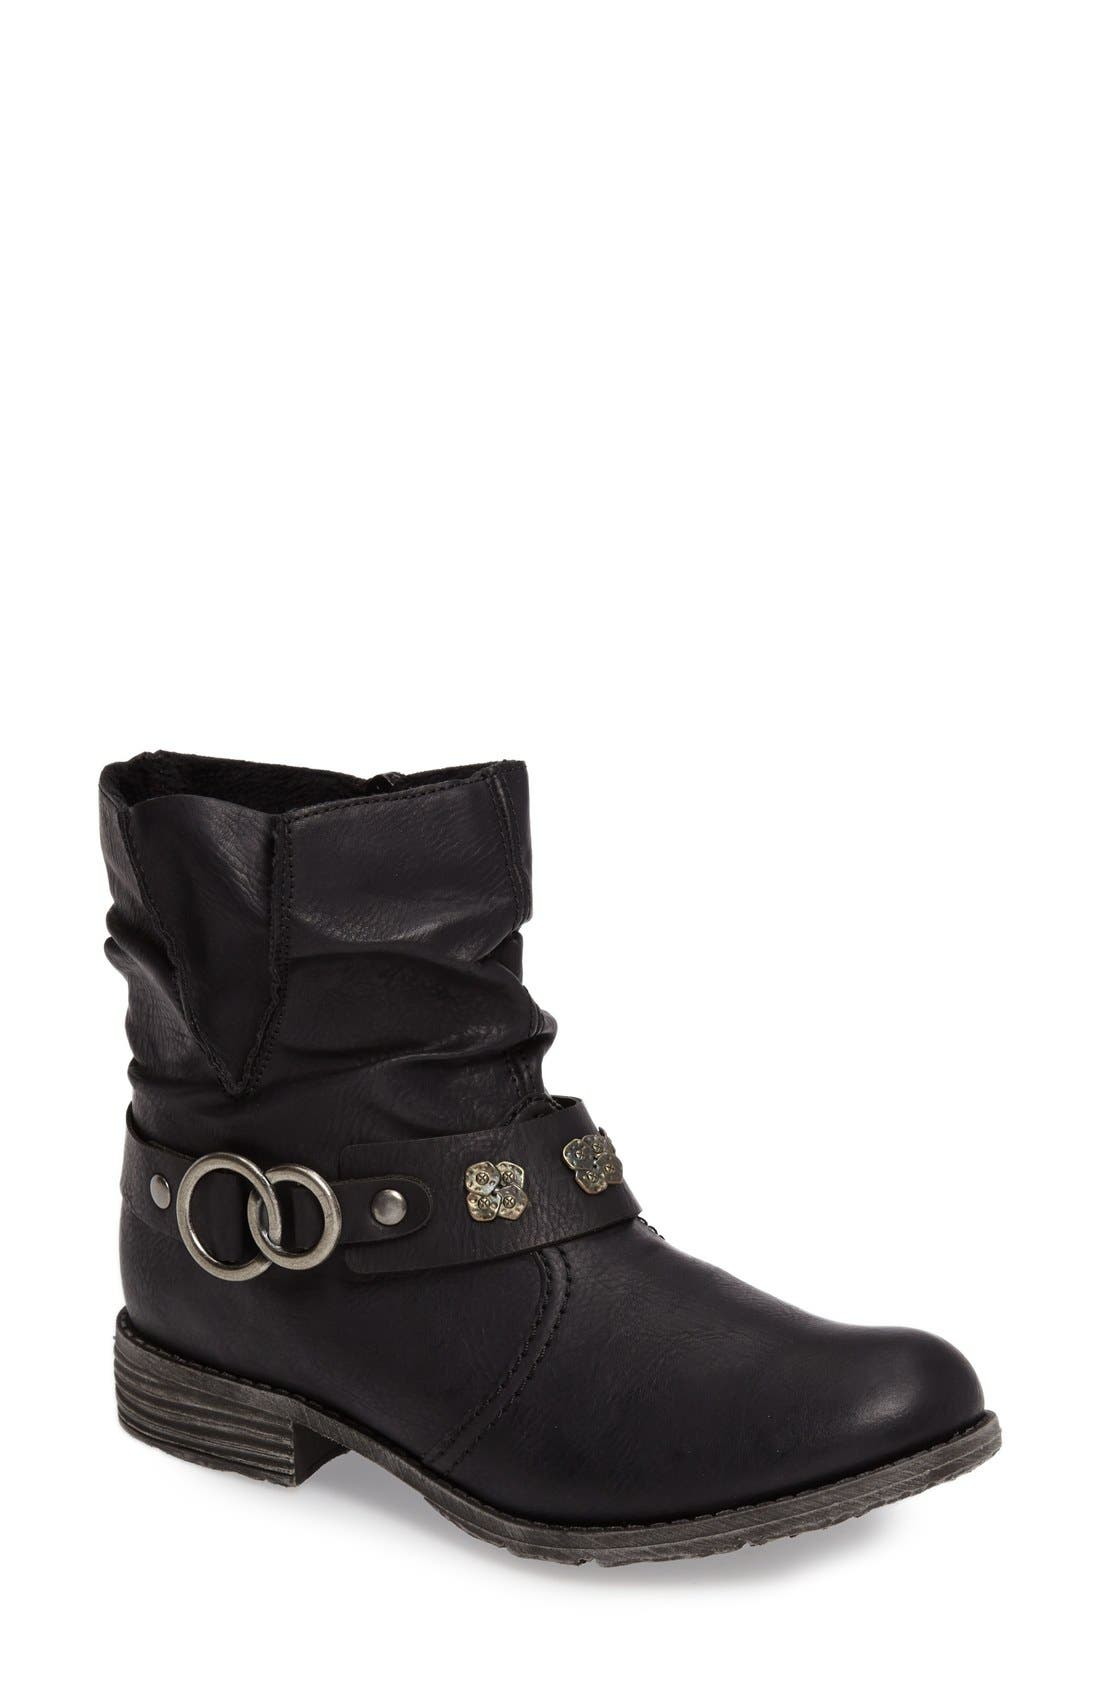 RIEKER ANTISTRESS Rieker Antistress 'Peggy' Boot